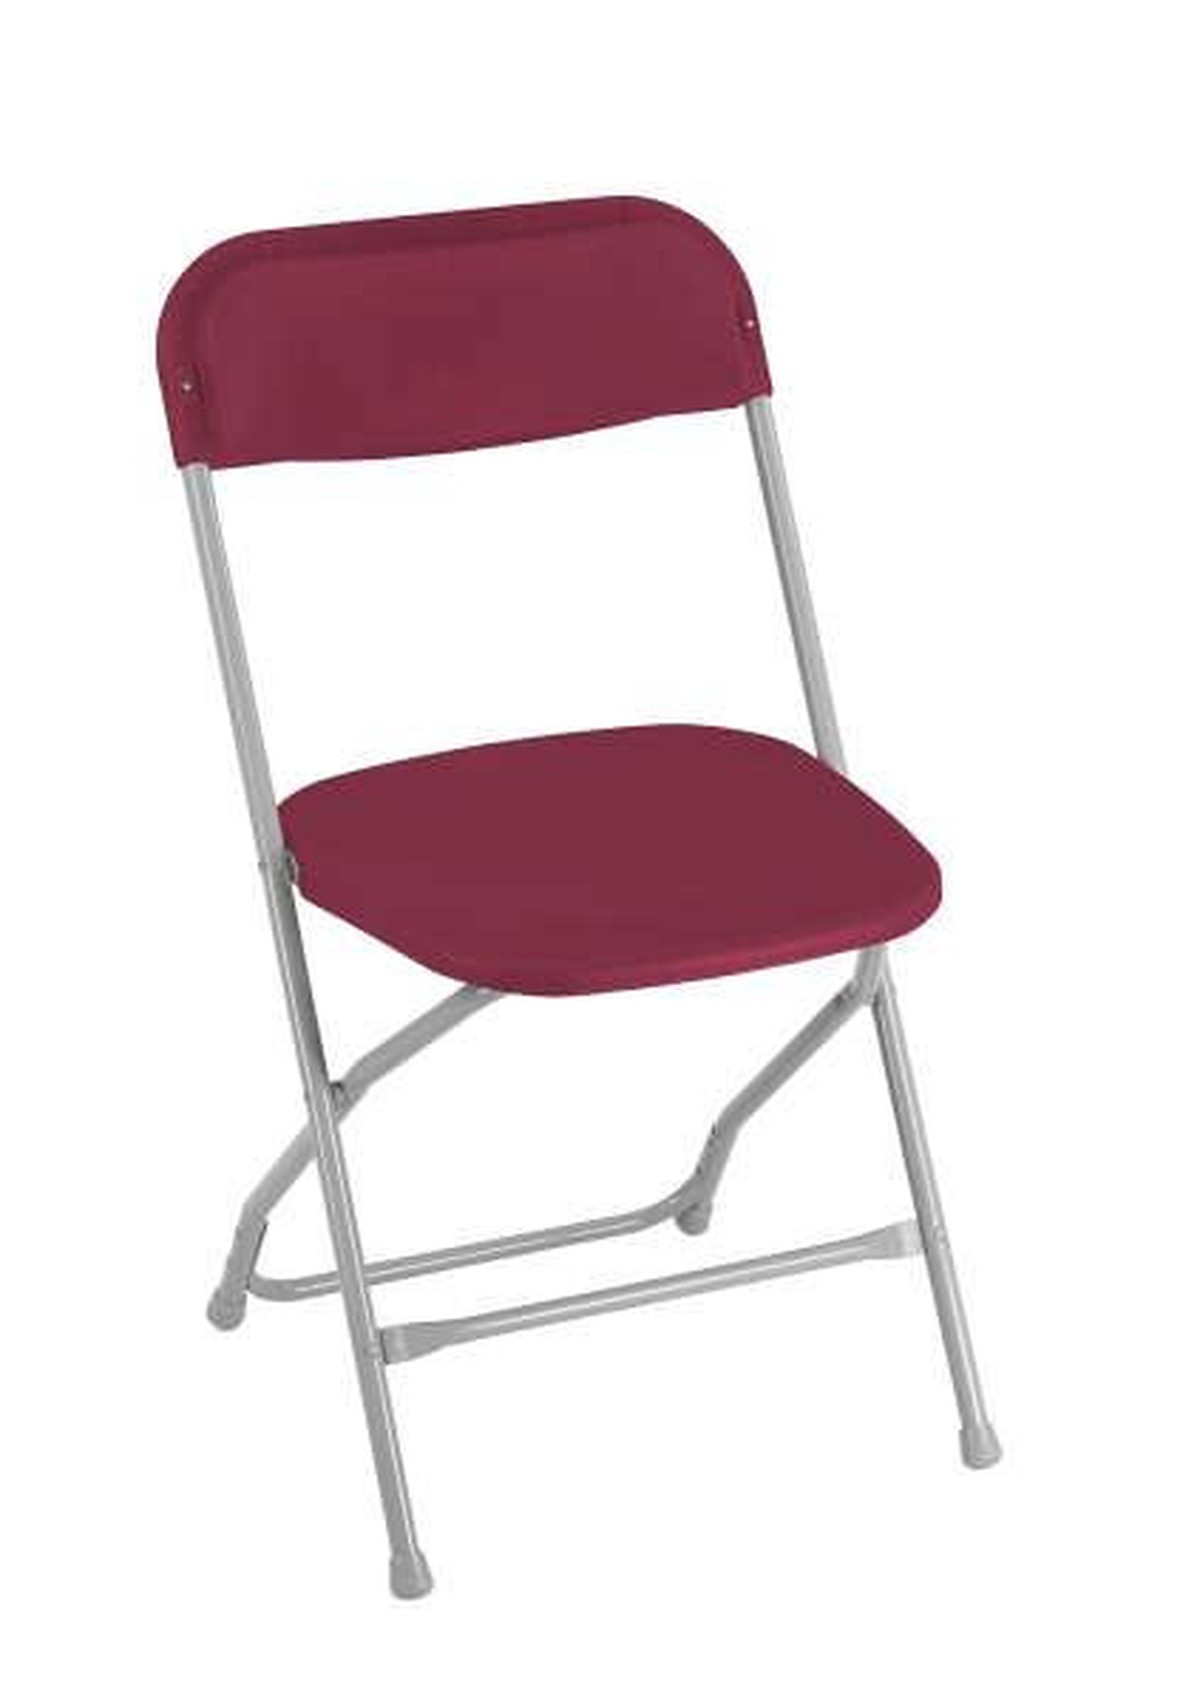 Wanted Second Hand Furniture Secondhand Chairs And Tables  Folding Chairs  Wanted Used